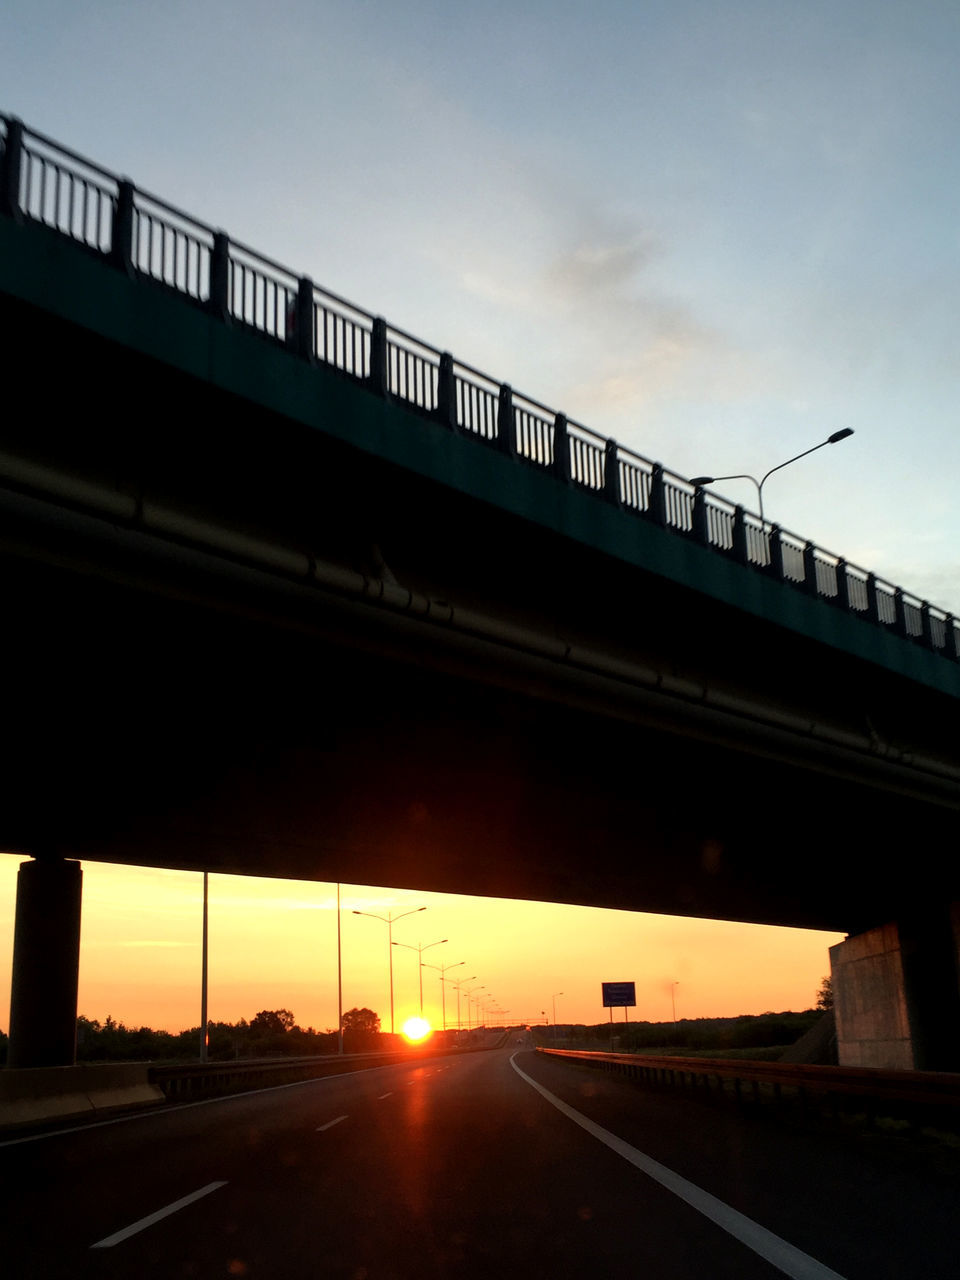 transportation, bridge - man made structure, sunset, connection, architecture, built structure, road, rail transportation, sky, low angle view, sun, train - vehicle, mode of transport, public transportation, bridge, outdoors, land vehicle, silhouette, no people, day